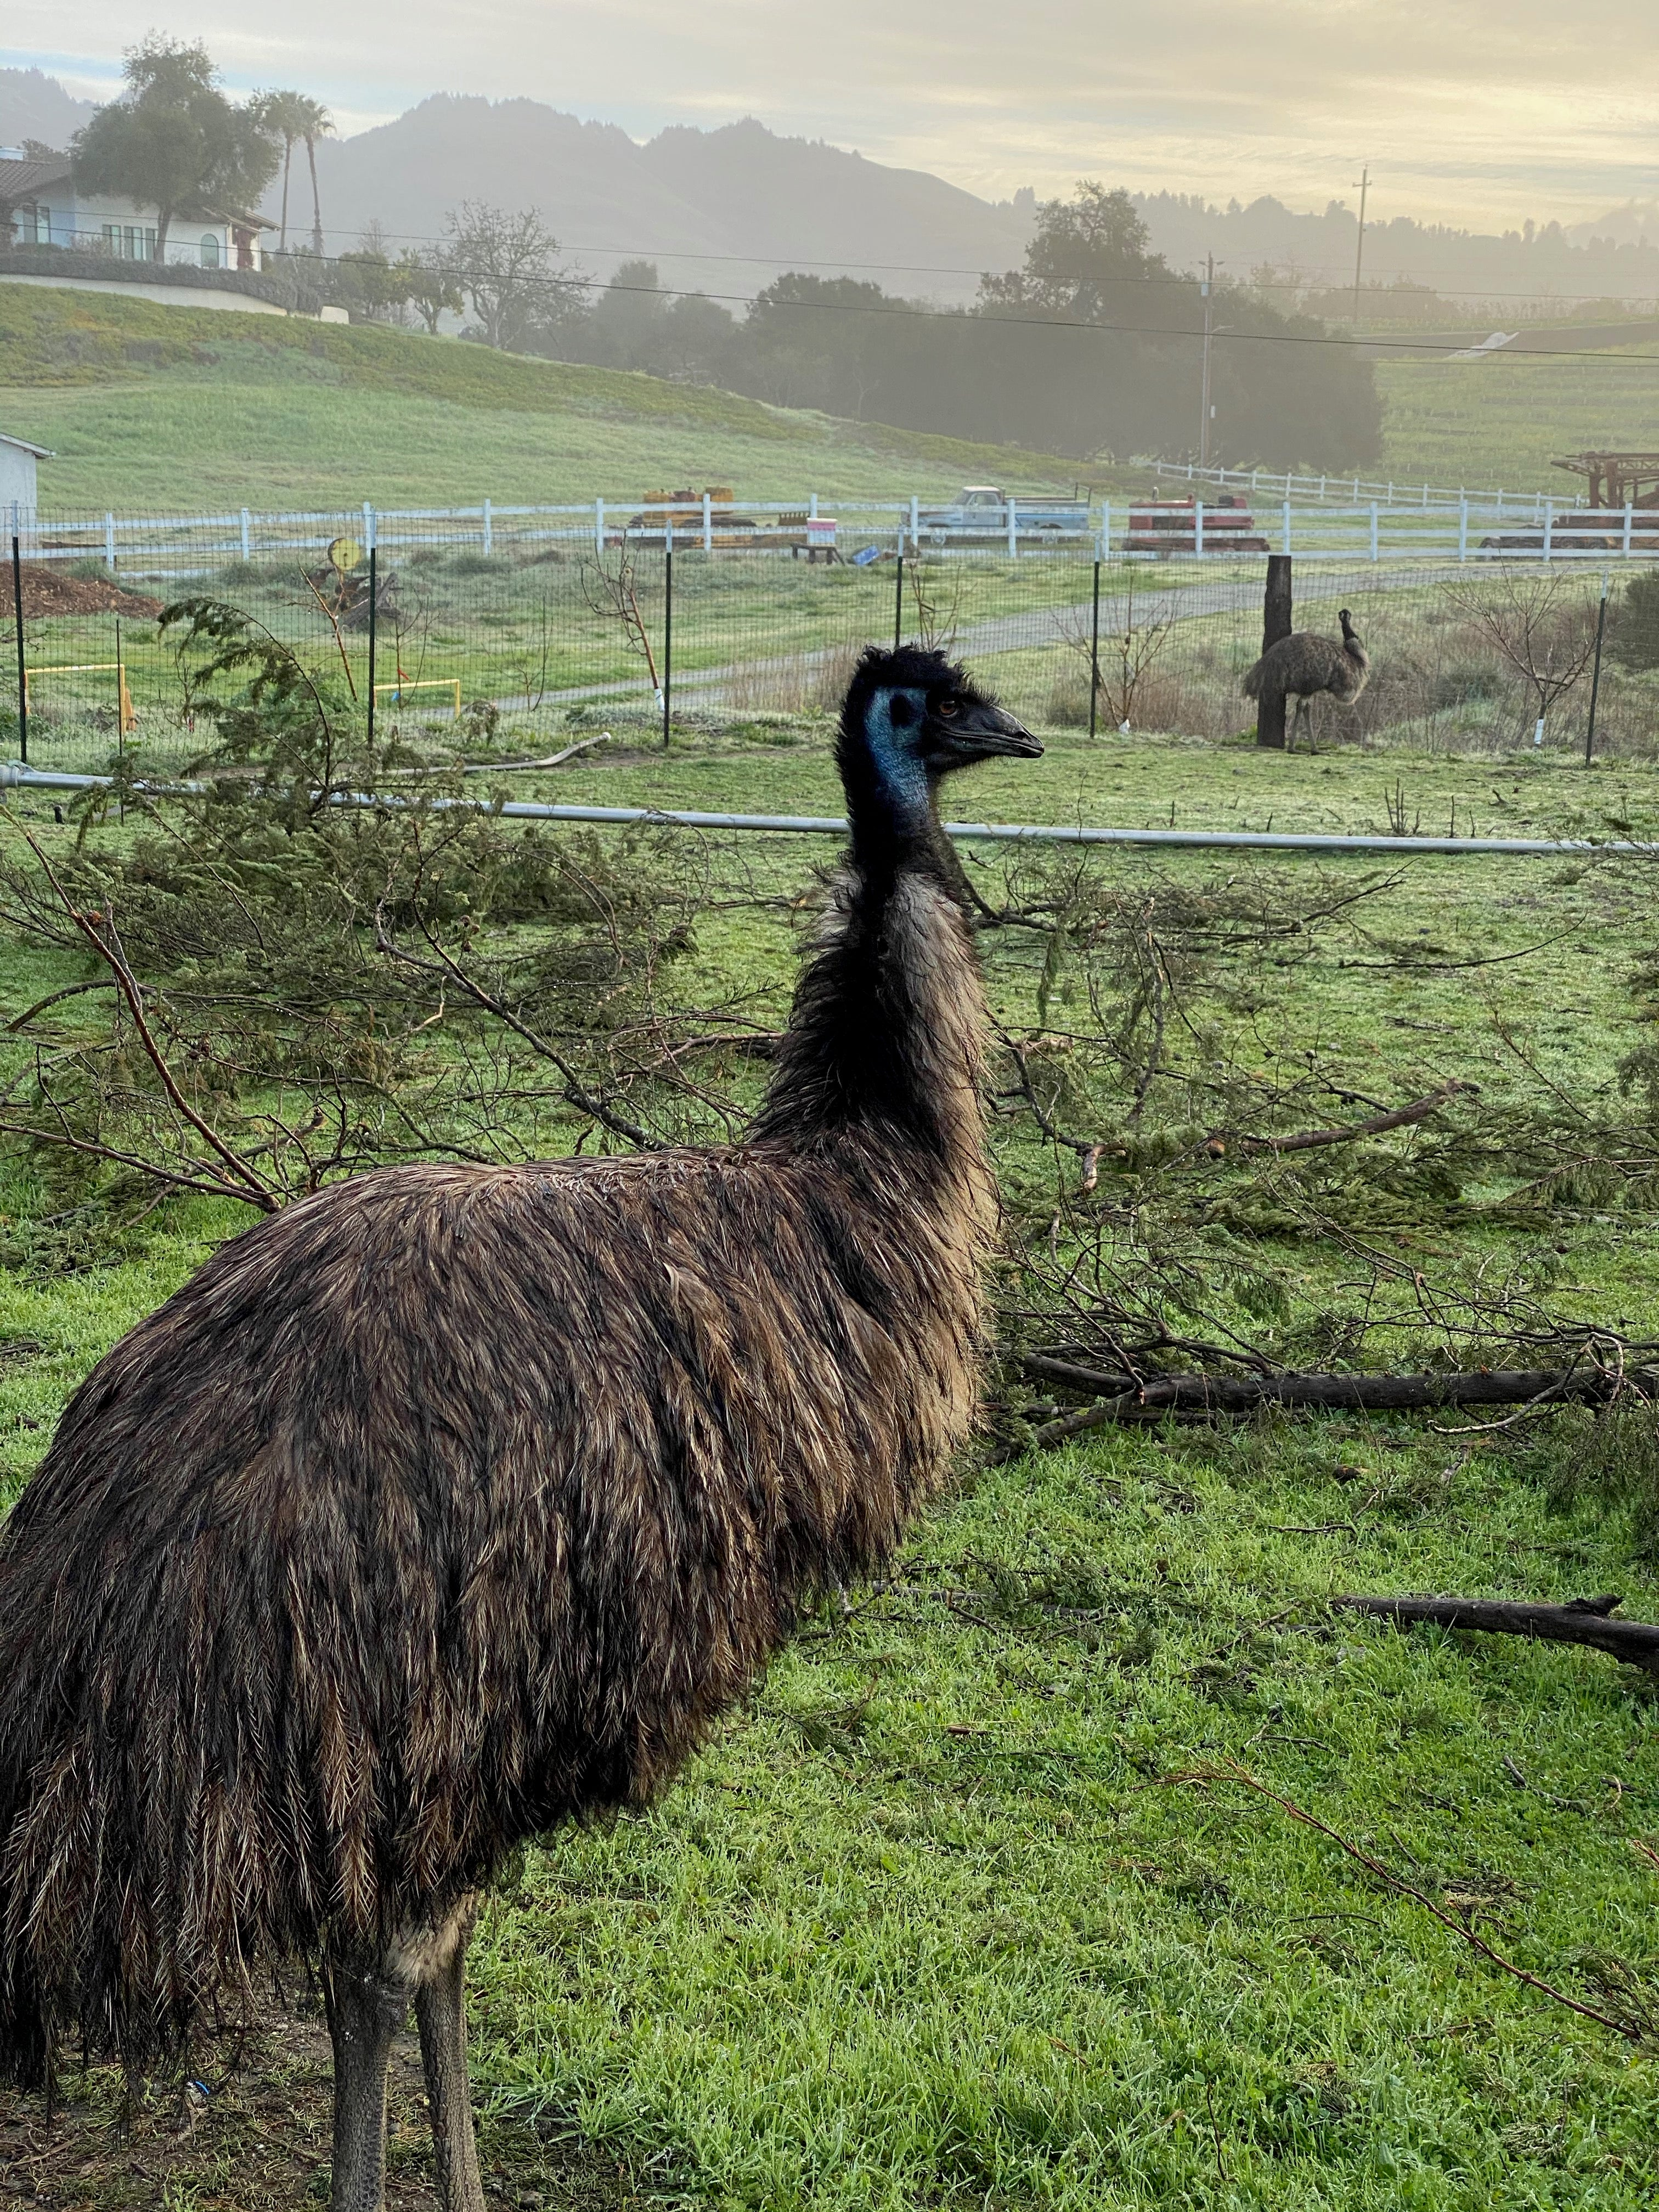 Ricky and Lucy, the emus